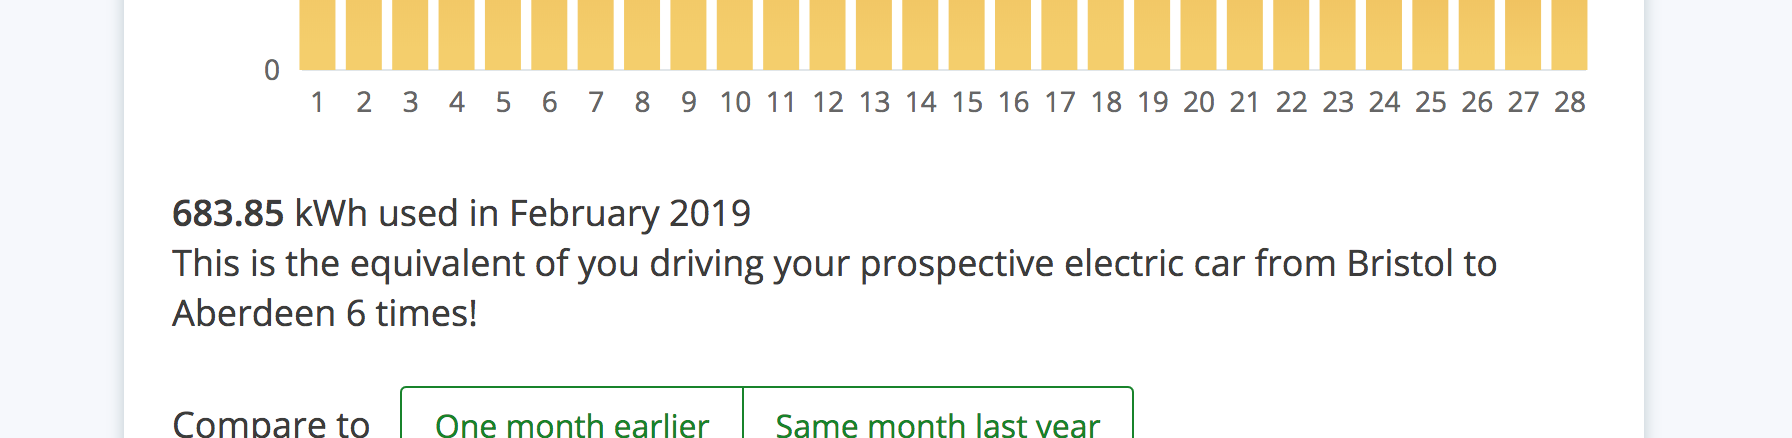 683.85 kWh used in February 2019. This is the equivalent of you driving your prospective electric car from Bristol to Aberdeen 6 times!